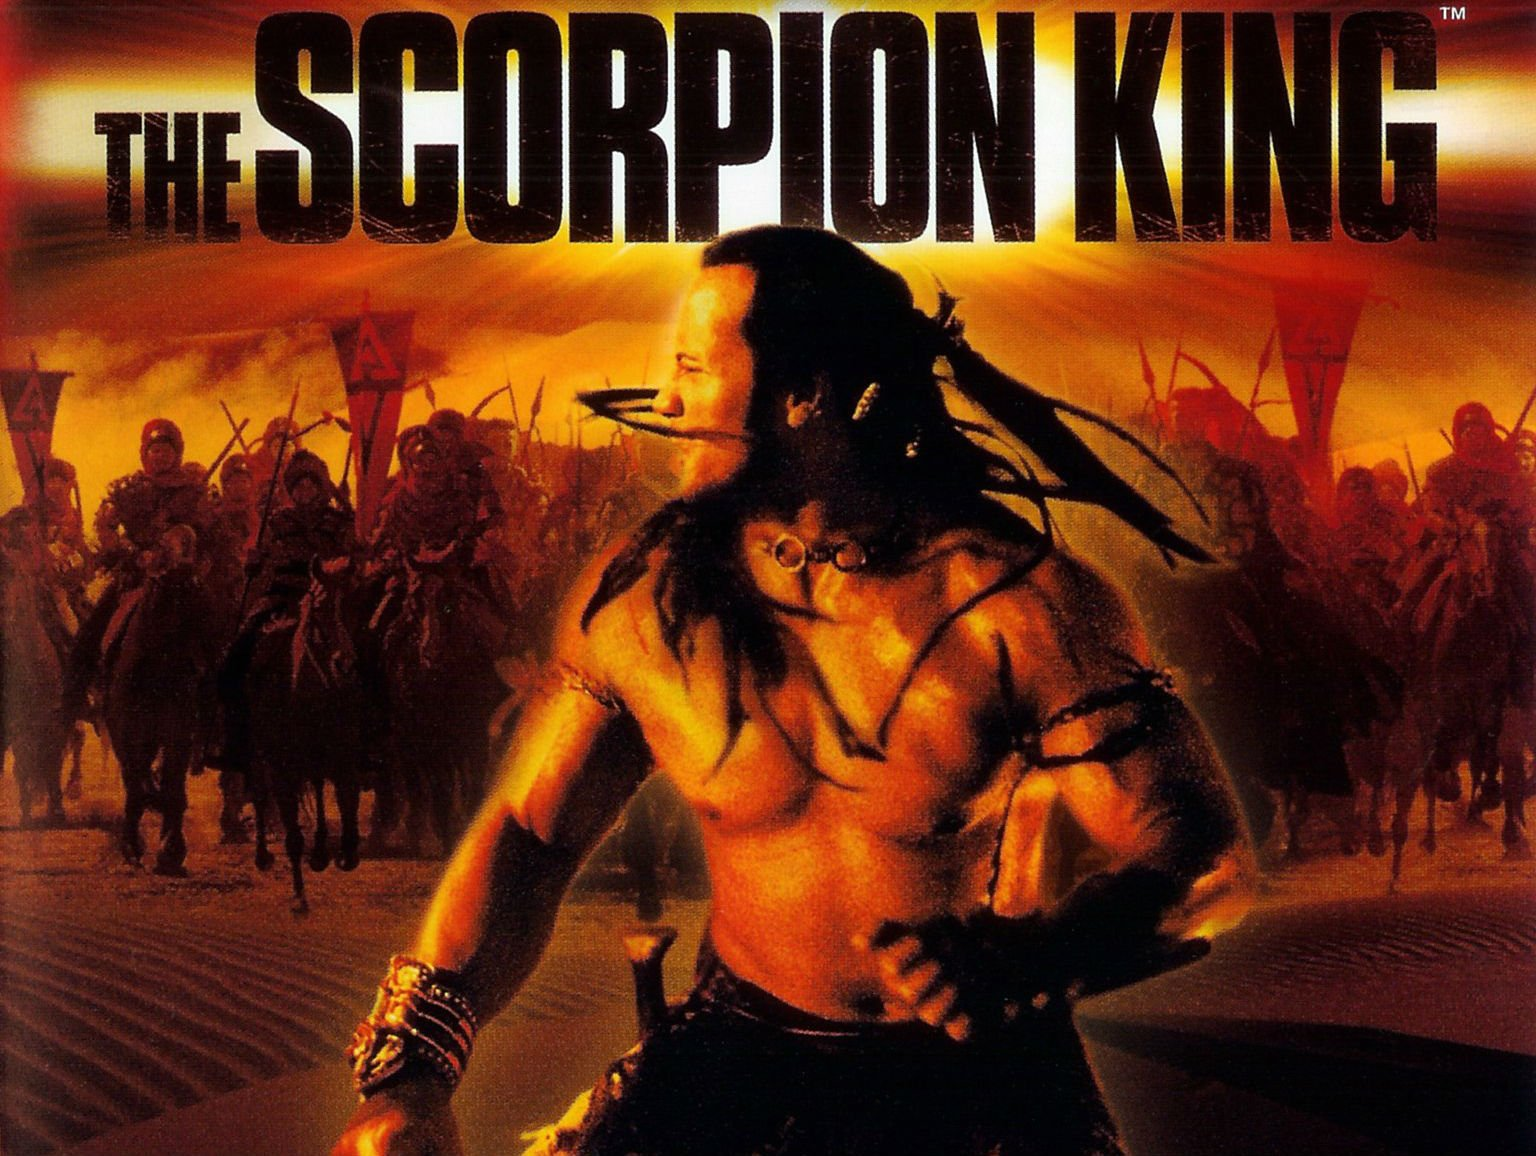 Kelly Hu Wallpaper In Scorpion Scorpion King Images Pictures